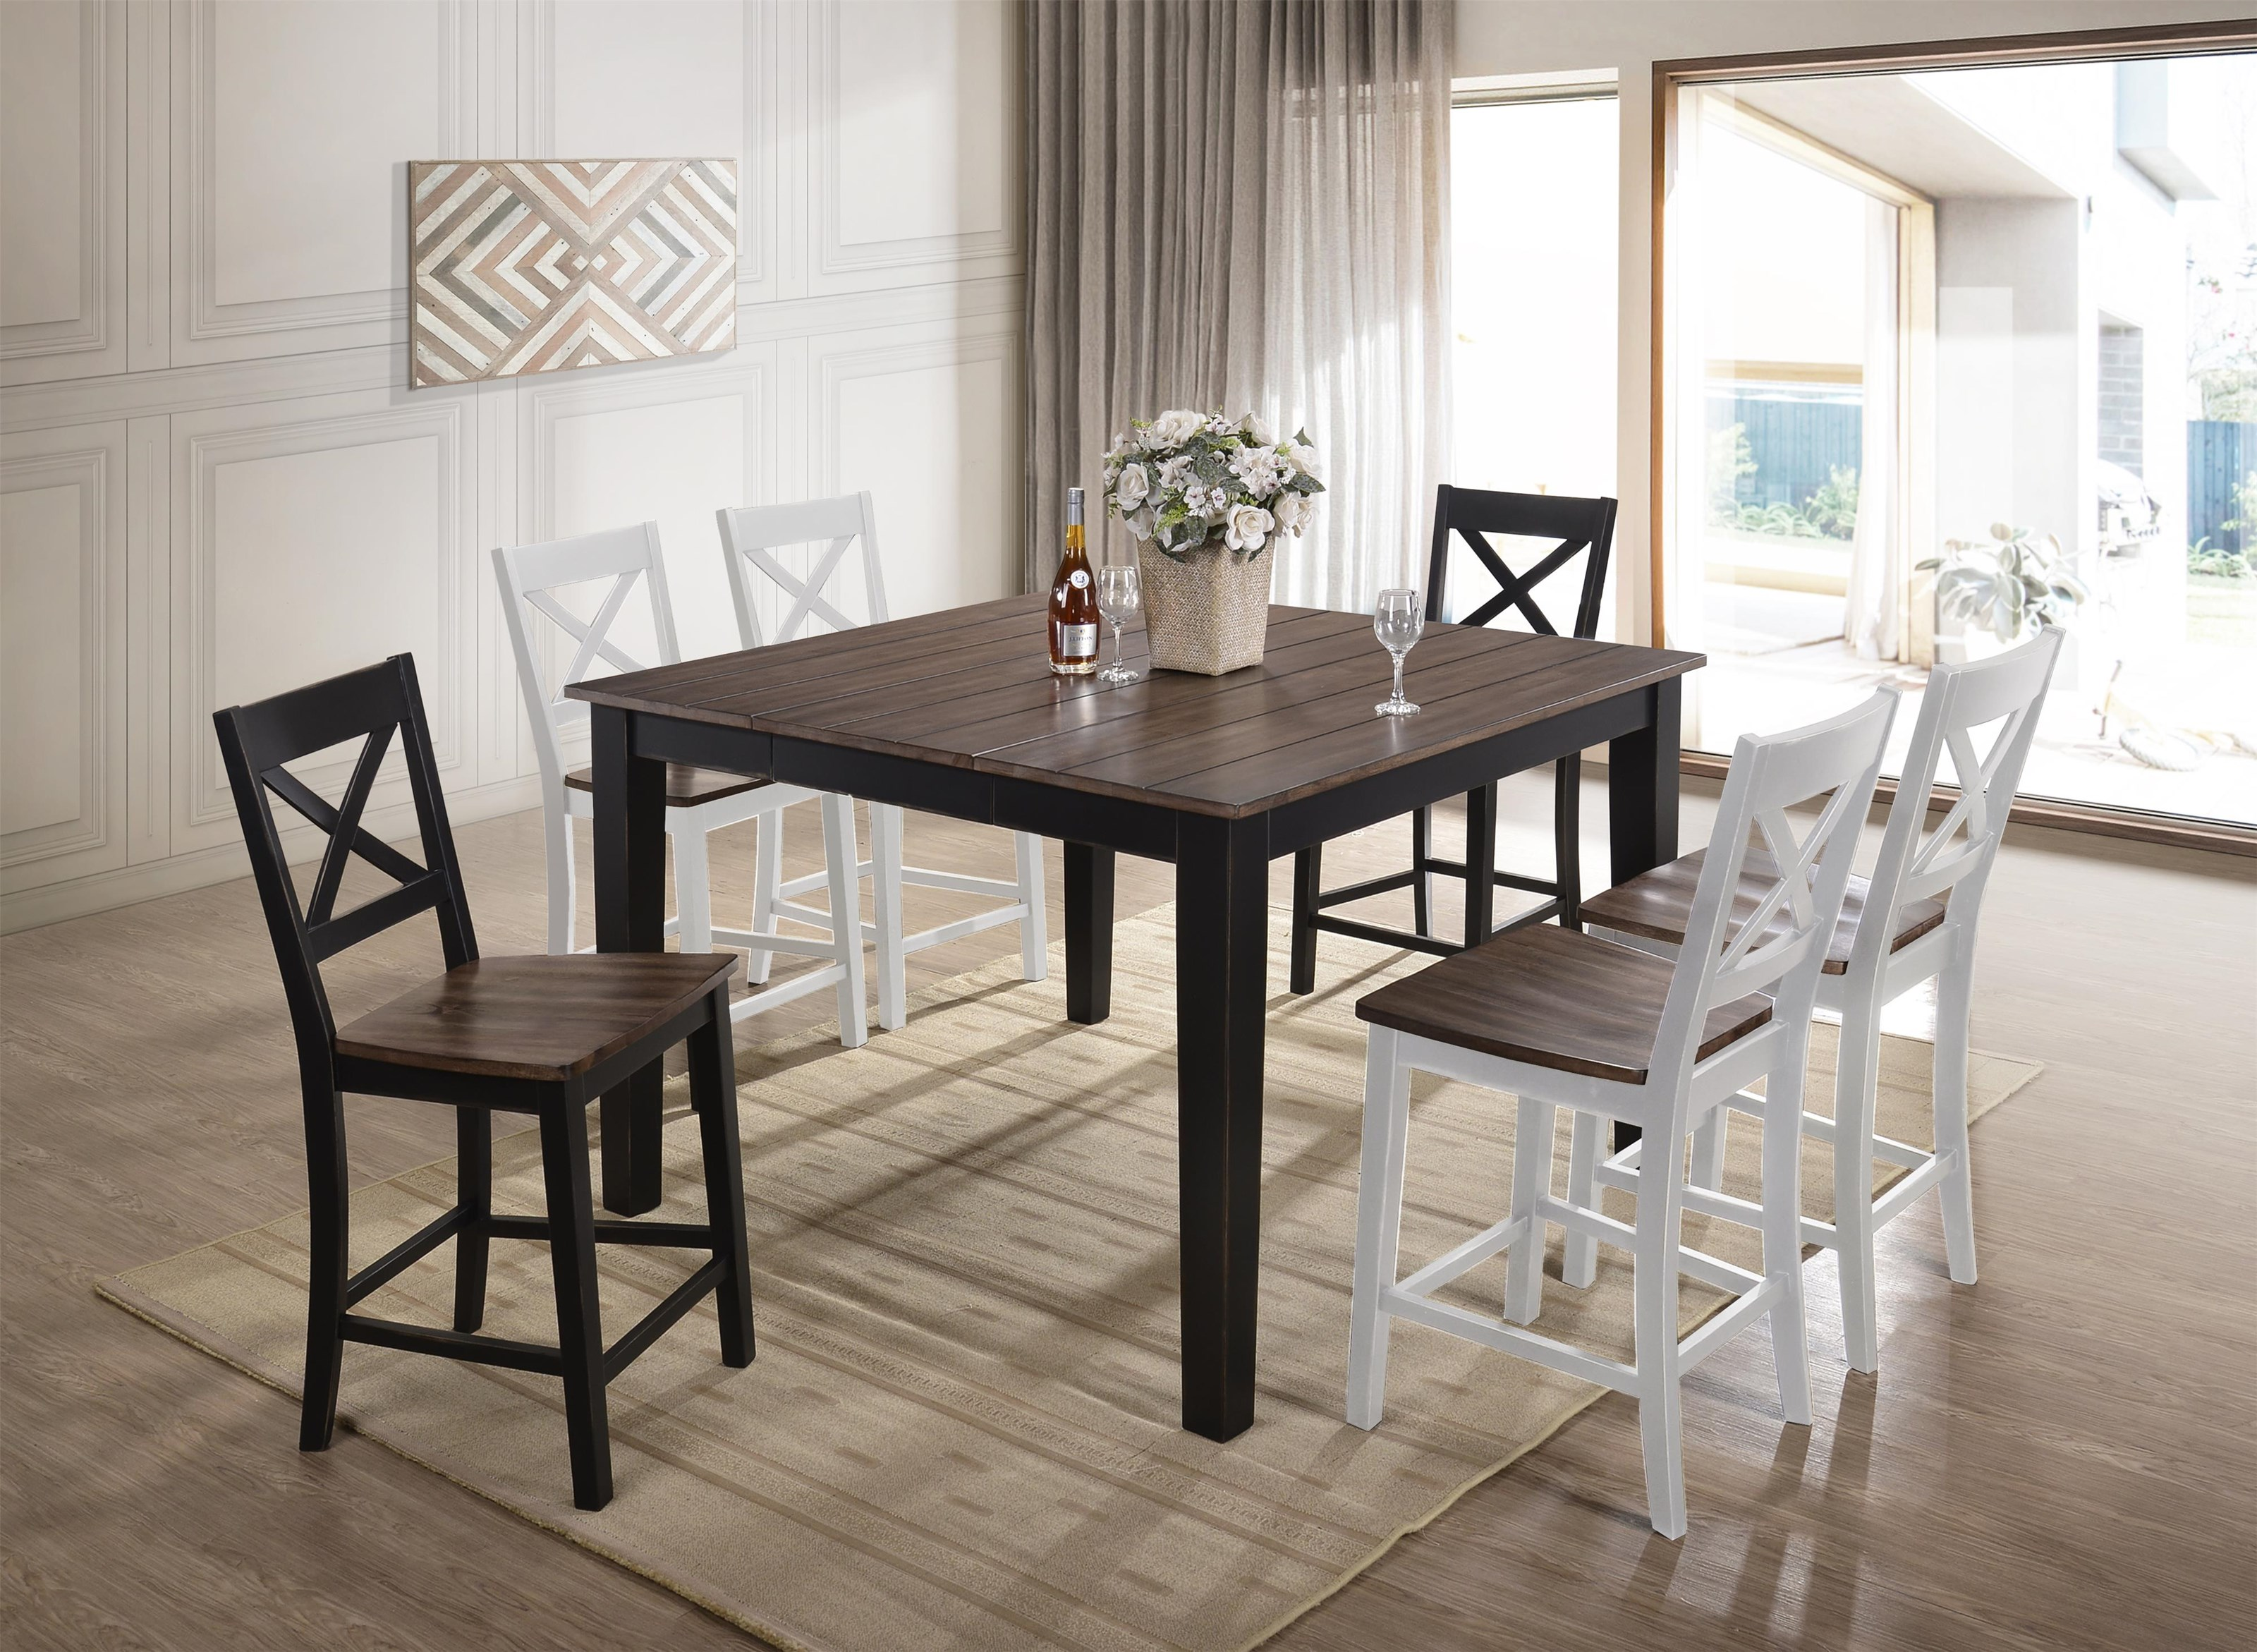 5058 Counter Height Square Dining Table by United Furniture Industries at Value City Furniture